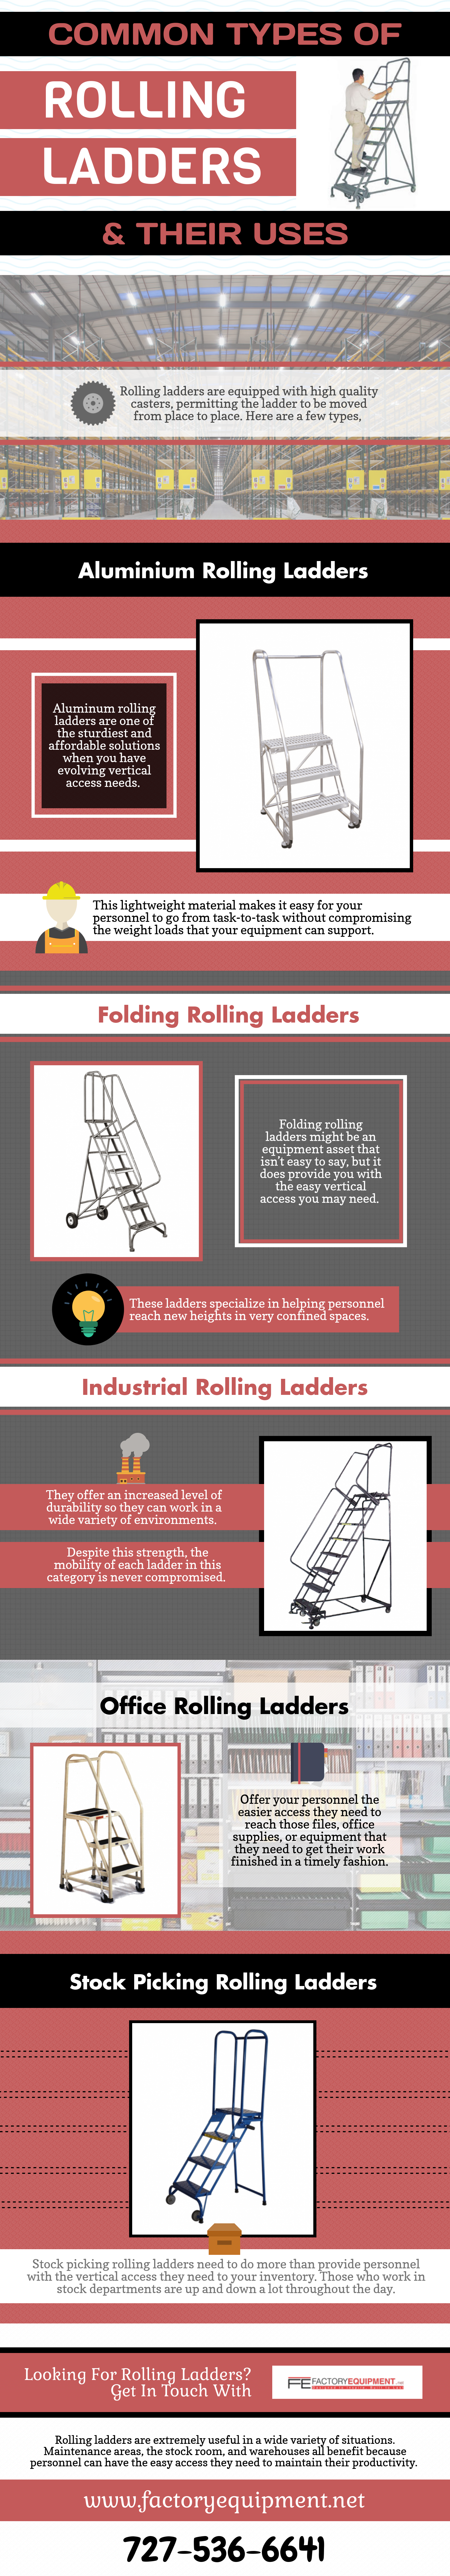 Common Types of Rolling Ladders and Their Uses [Infographic]